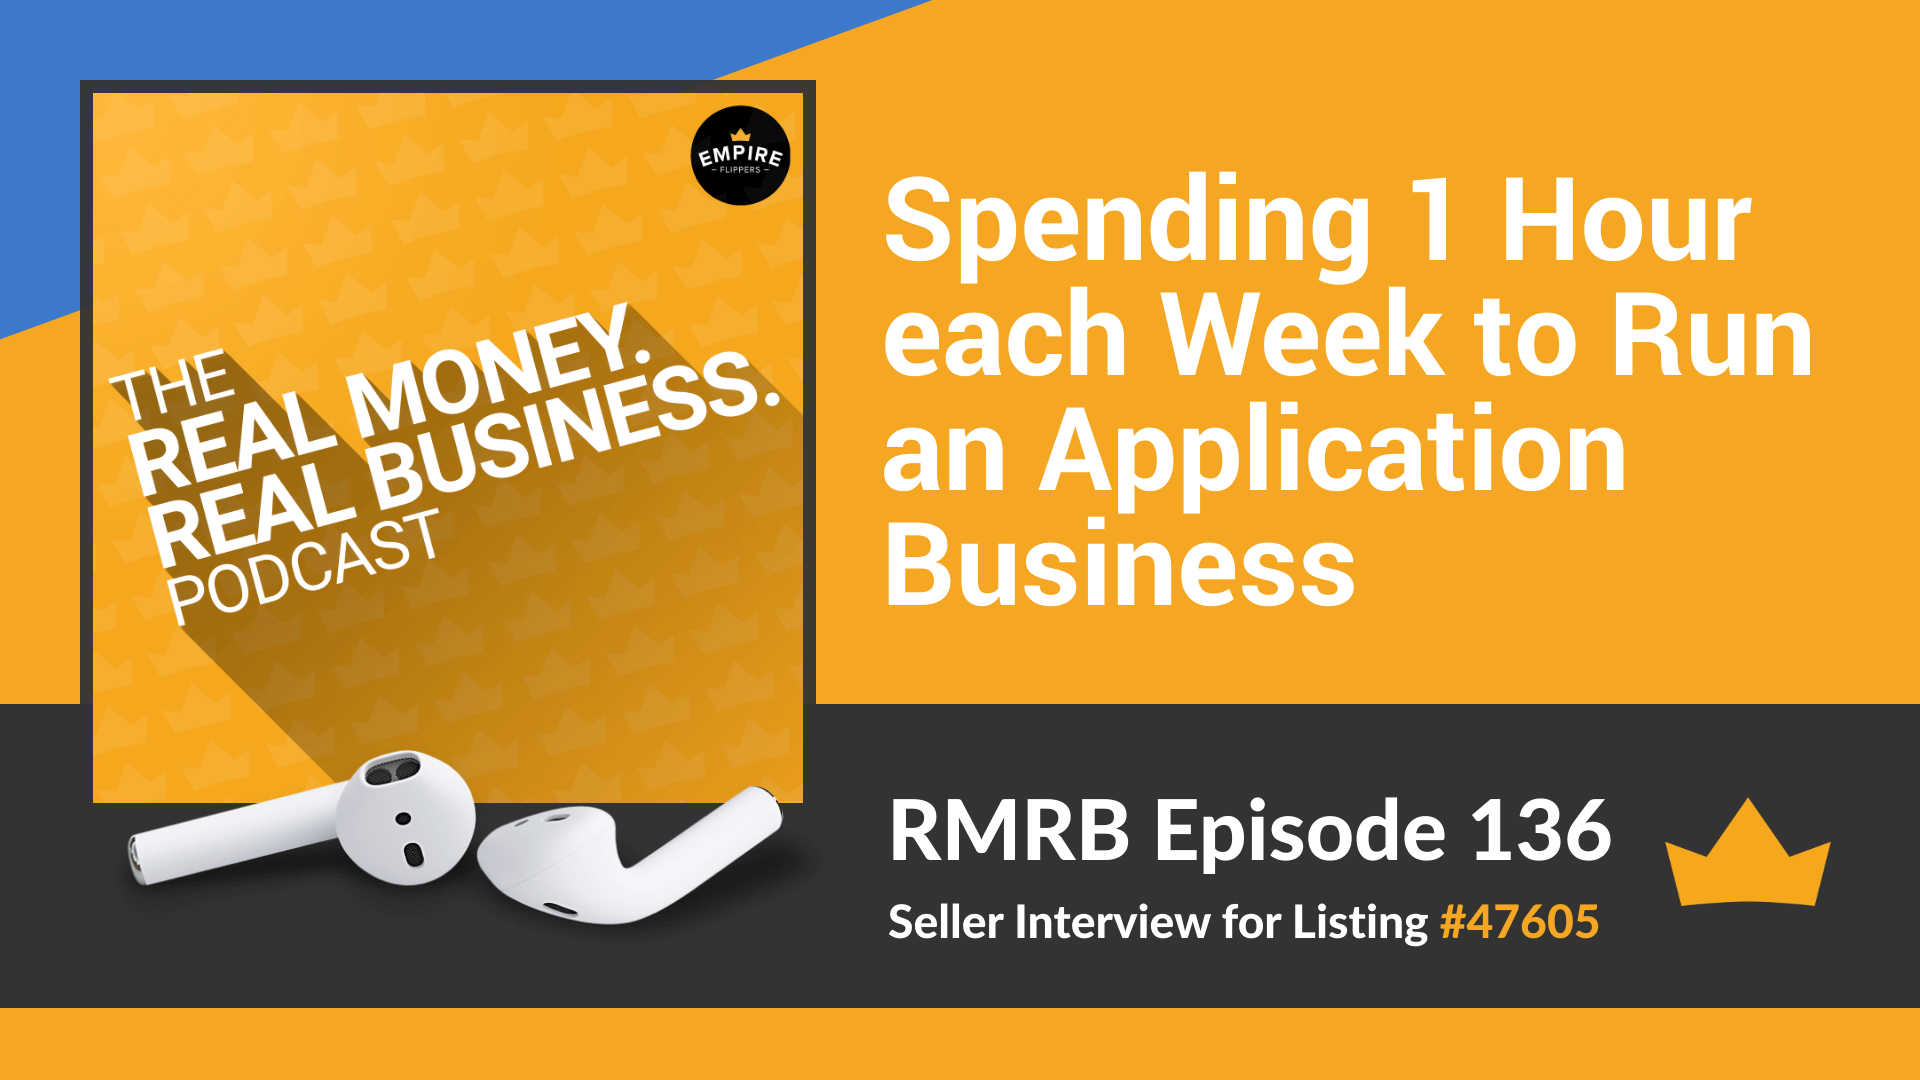 RMRB 136: Spending 1 Hour each Week to Run an Application Business